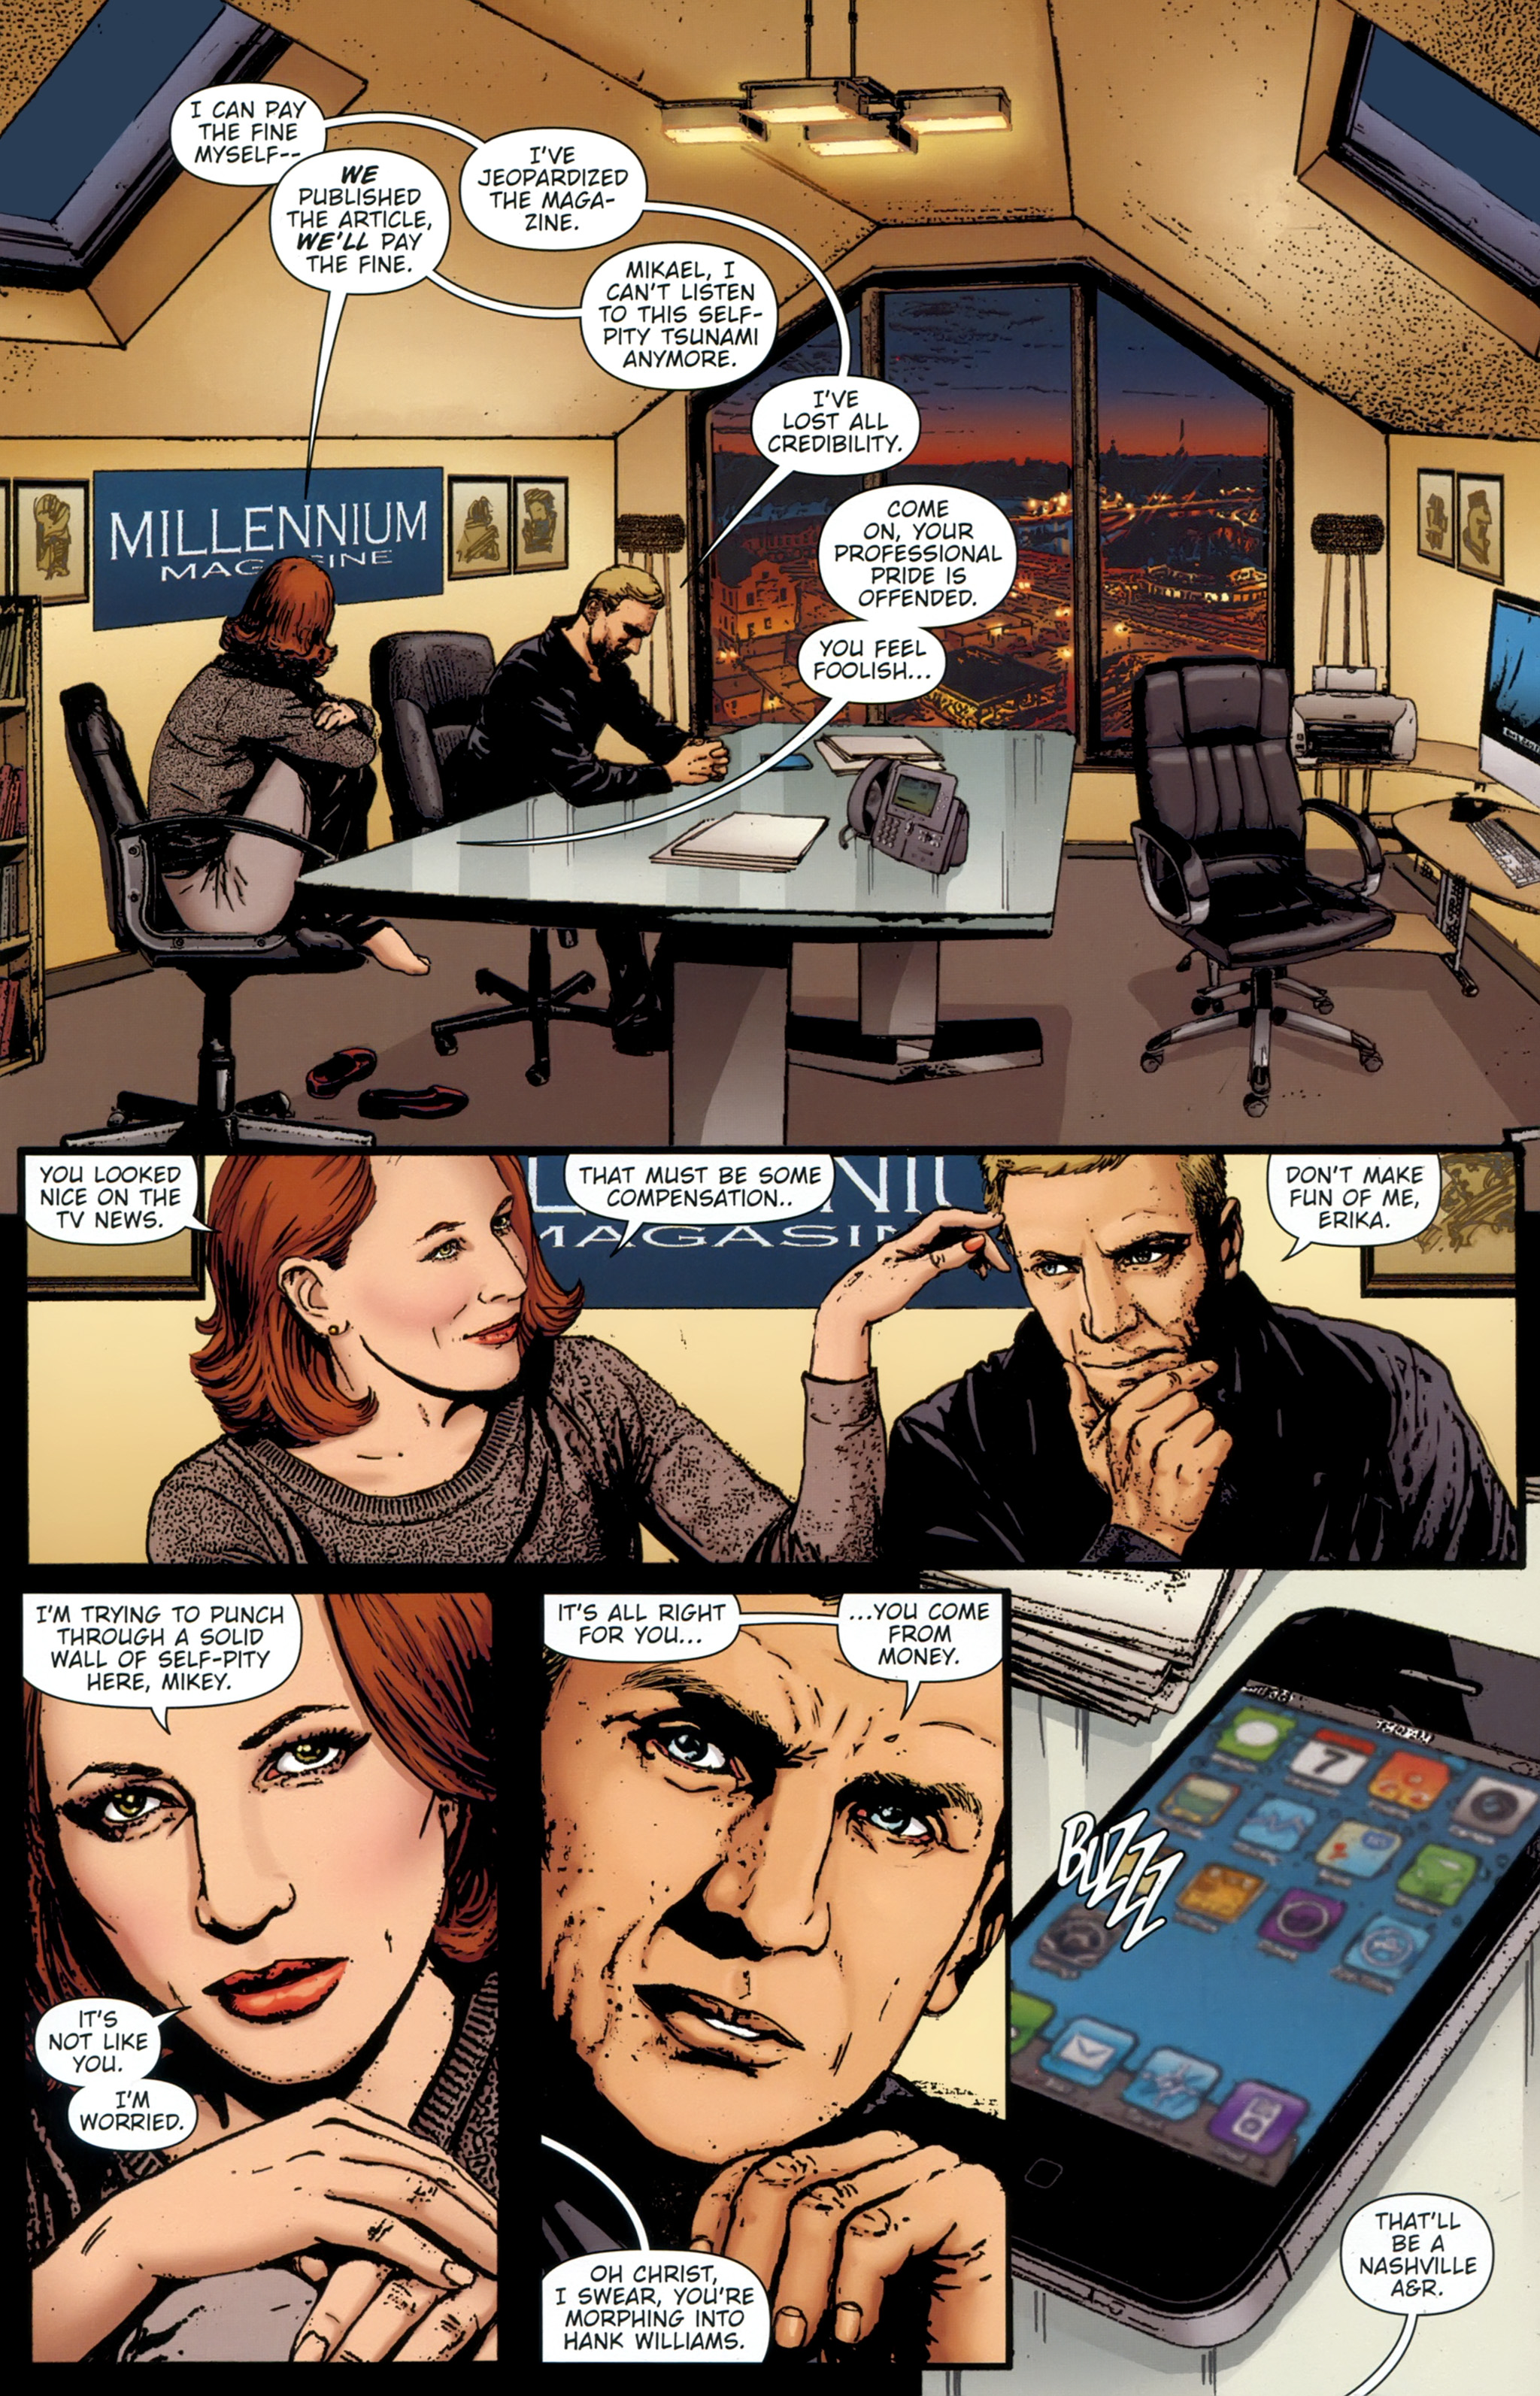 Read online The Girl With the Dragon Tattoo comic -  Issue # TPB 1 - 26